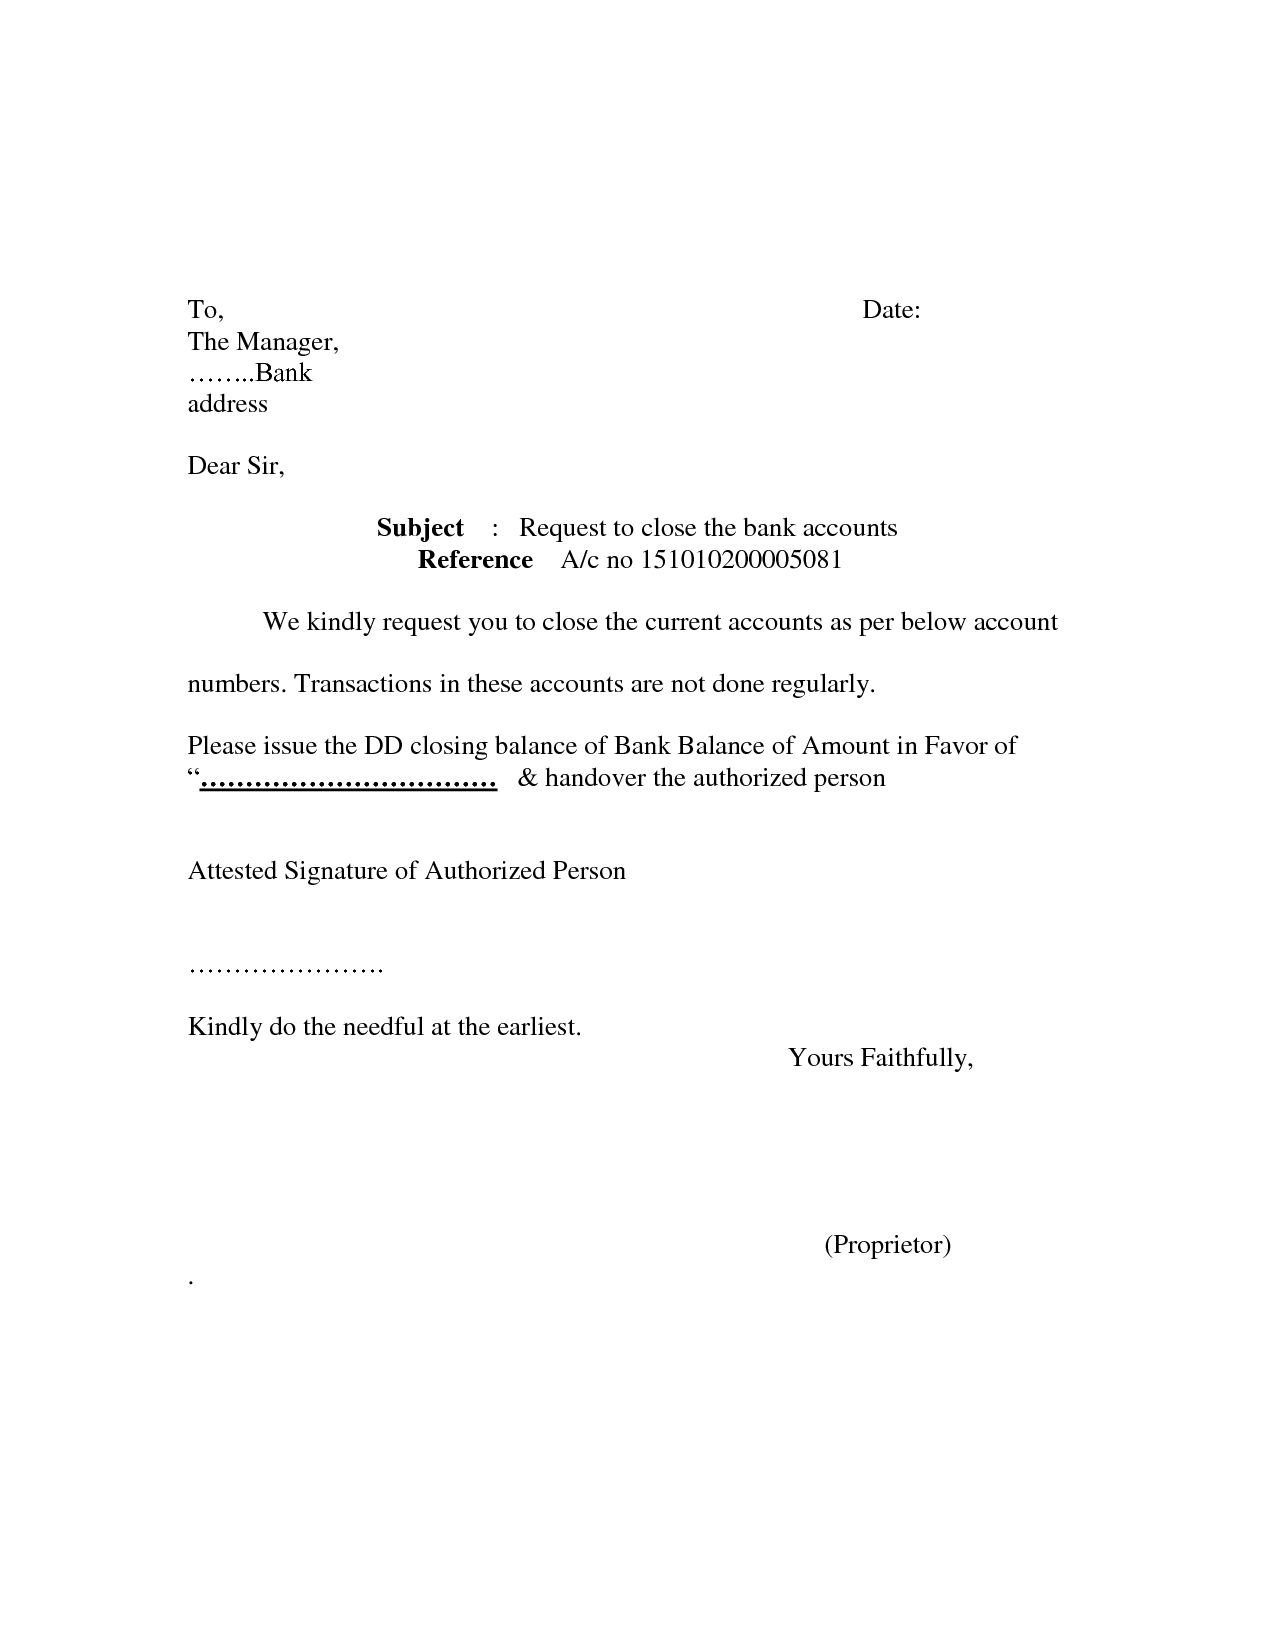 Bank Account Closing Letter Format Sample Cover Templates Throughout Account Closure Letter Template